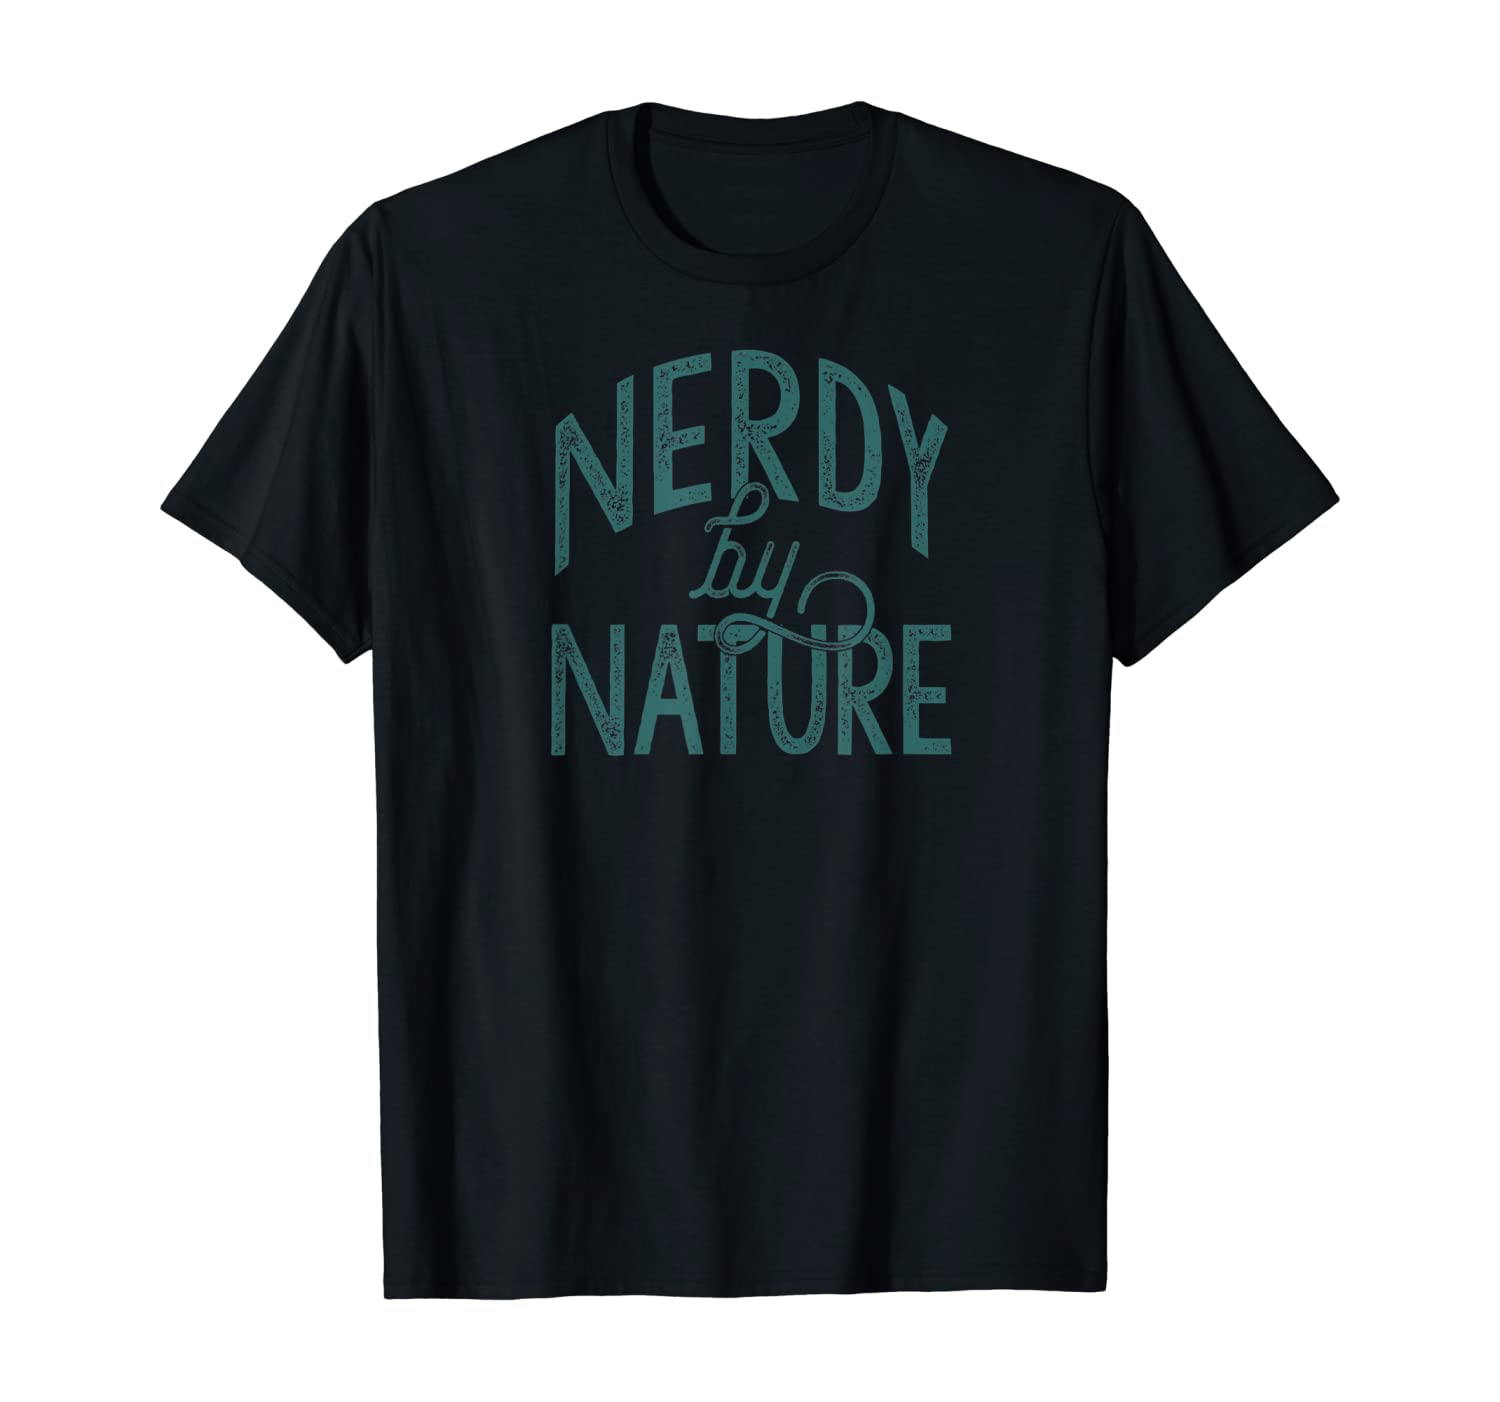 NERDY BY NATURE T-Shirt Meme Geeky Gift Idea Funny Meme Nerd